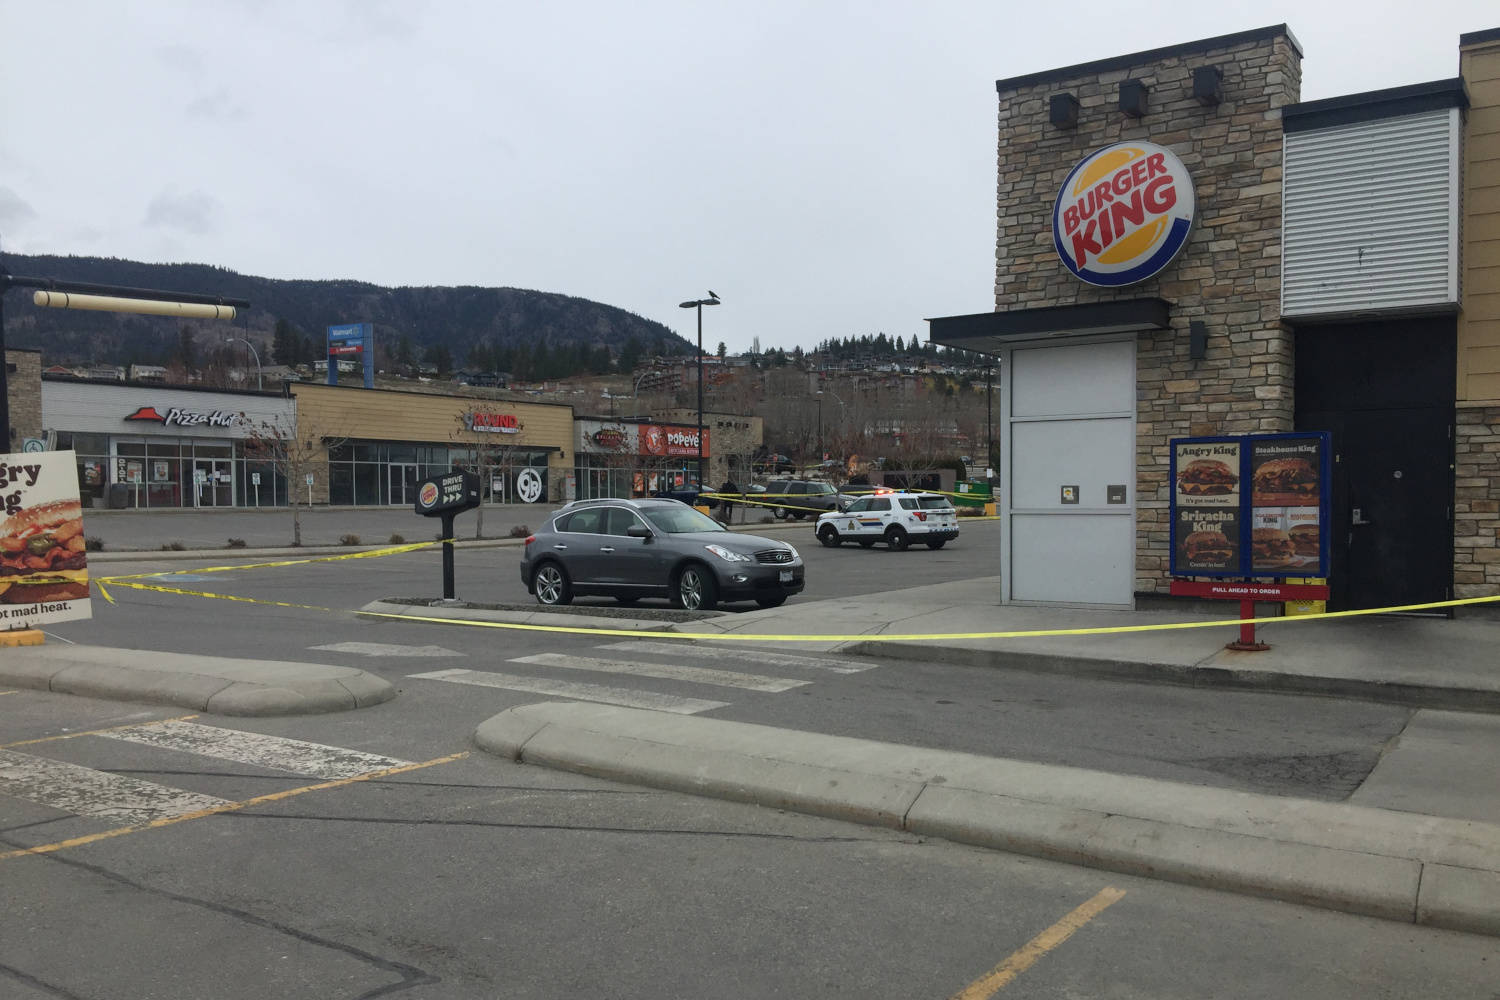 Police have cordoned off an area outside a West Kelowna strip mall near Highway 97 and Elk Road on Sunday morning. (Dave Ogilvie photo)